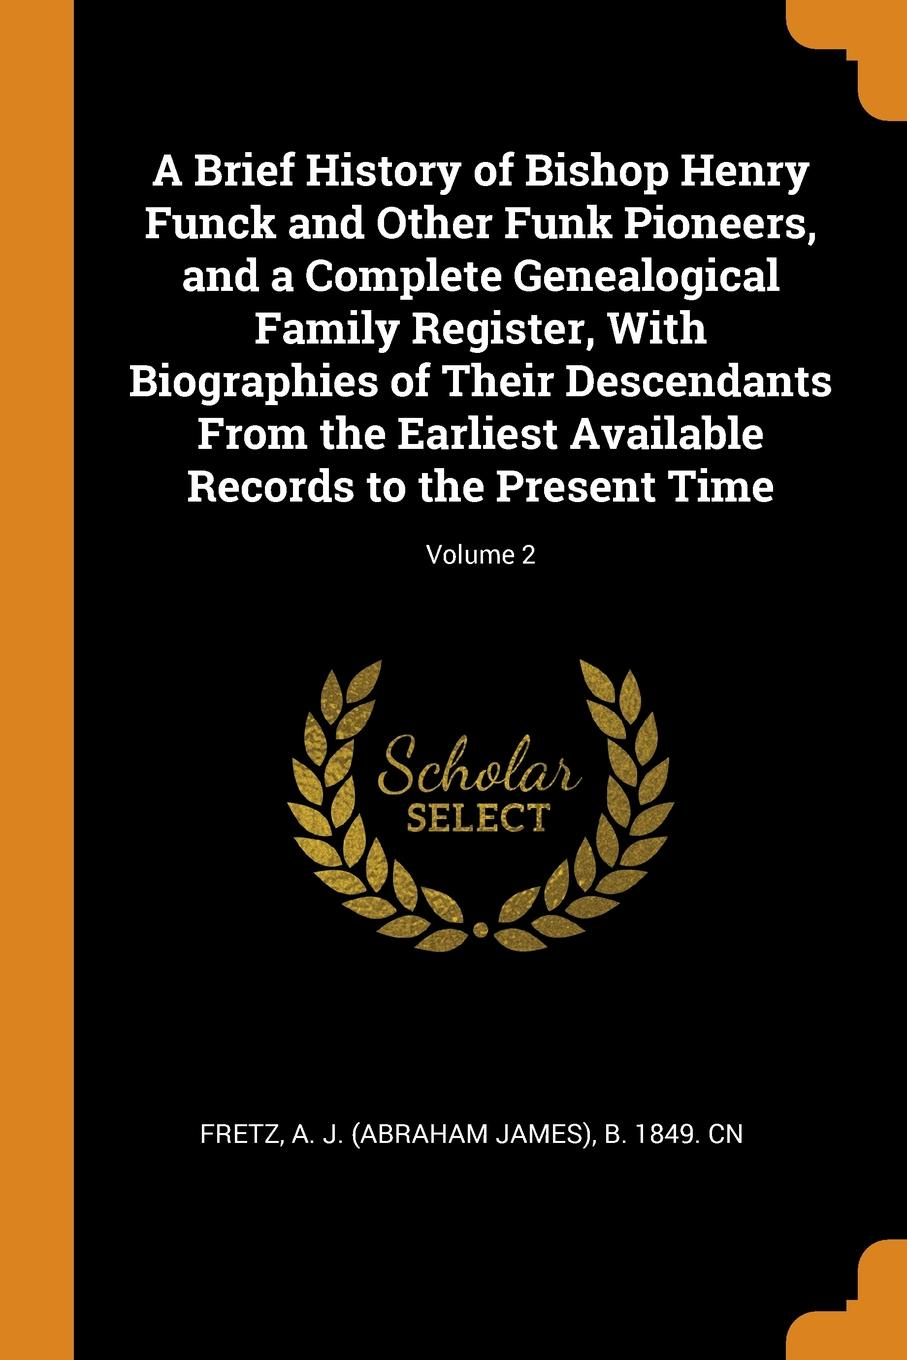 A Brief History of Bishop Henry Funck and Other Funk Pioneers, and a Complete Genealogical Family Register, With Biographies of Their Descendants From the Earliest Available Records to the Present Time; Volume 2 william abbatt a history of the united states and its people from their earliest records to the present time volume 6